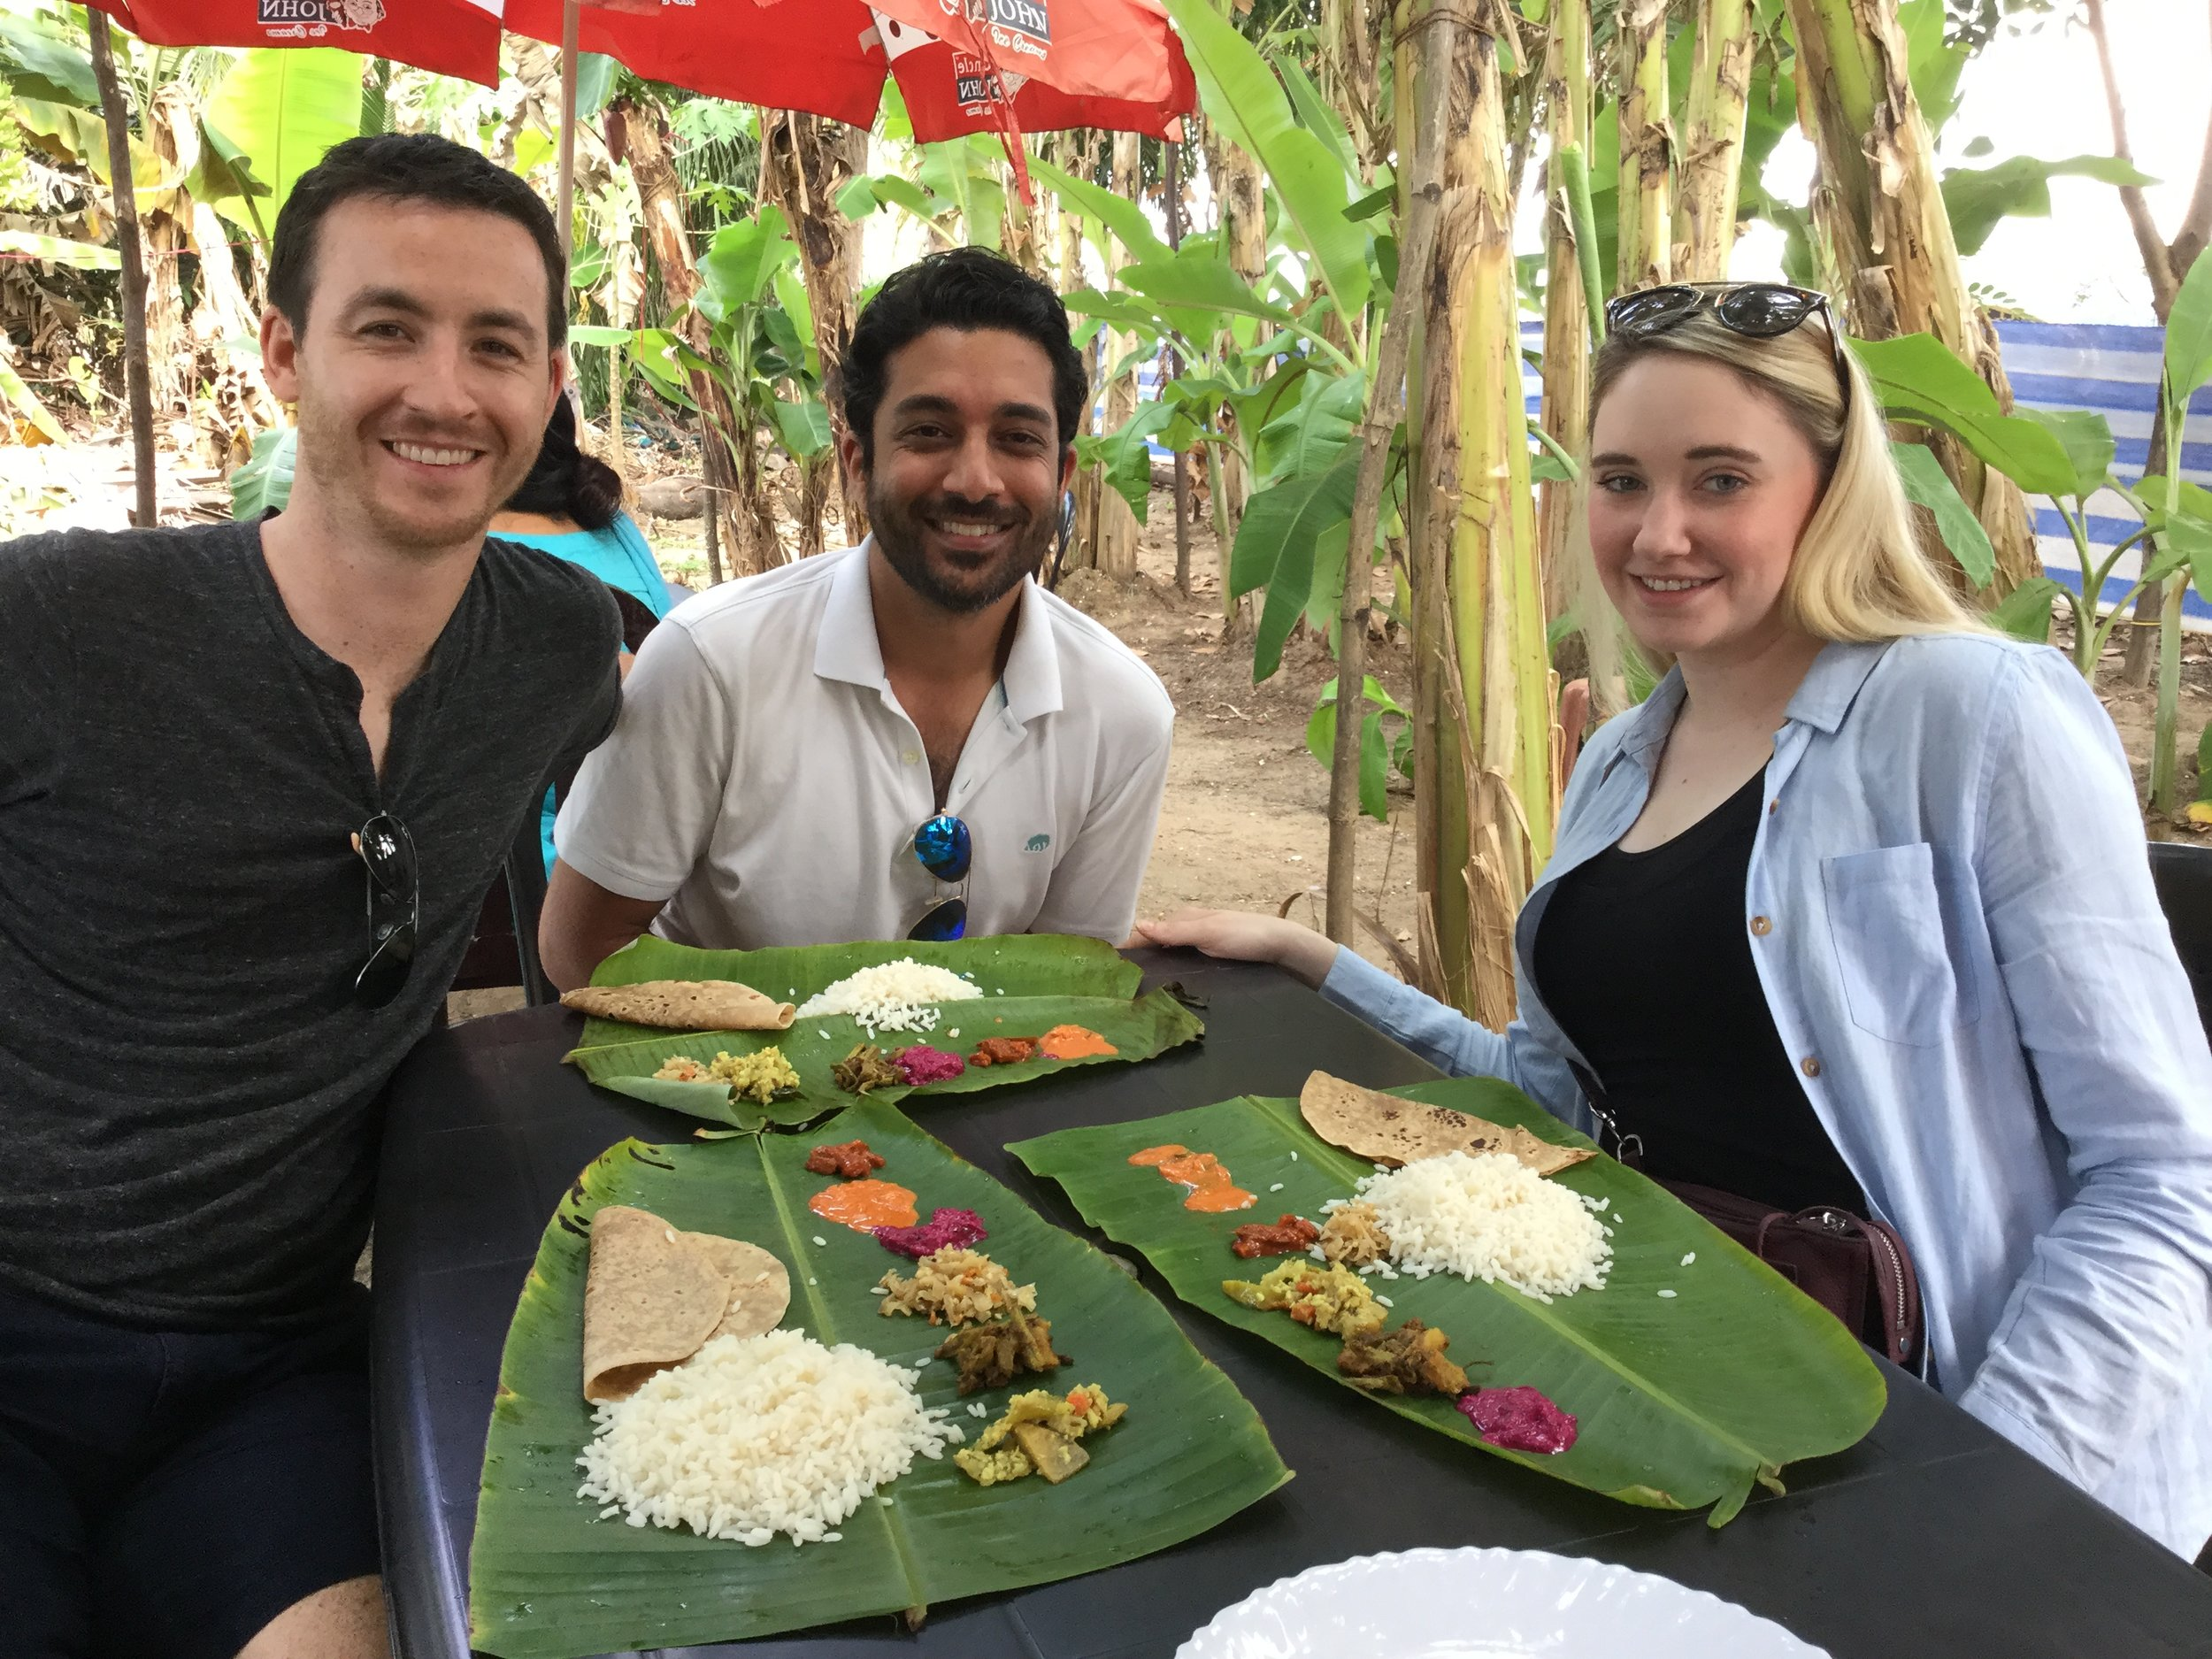 Enjoying veggie thali for lunch in true South Indian way - off banana leaves.